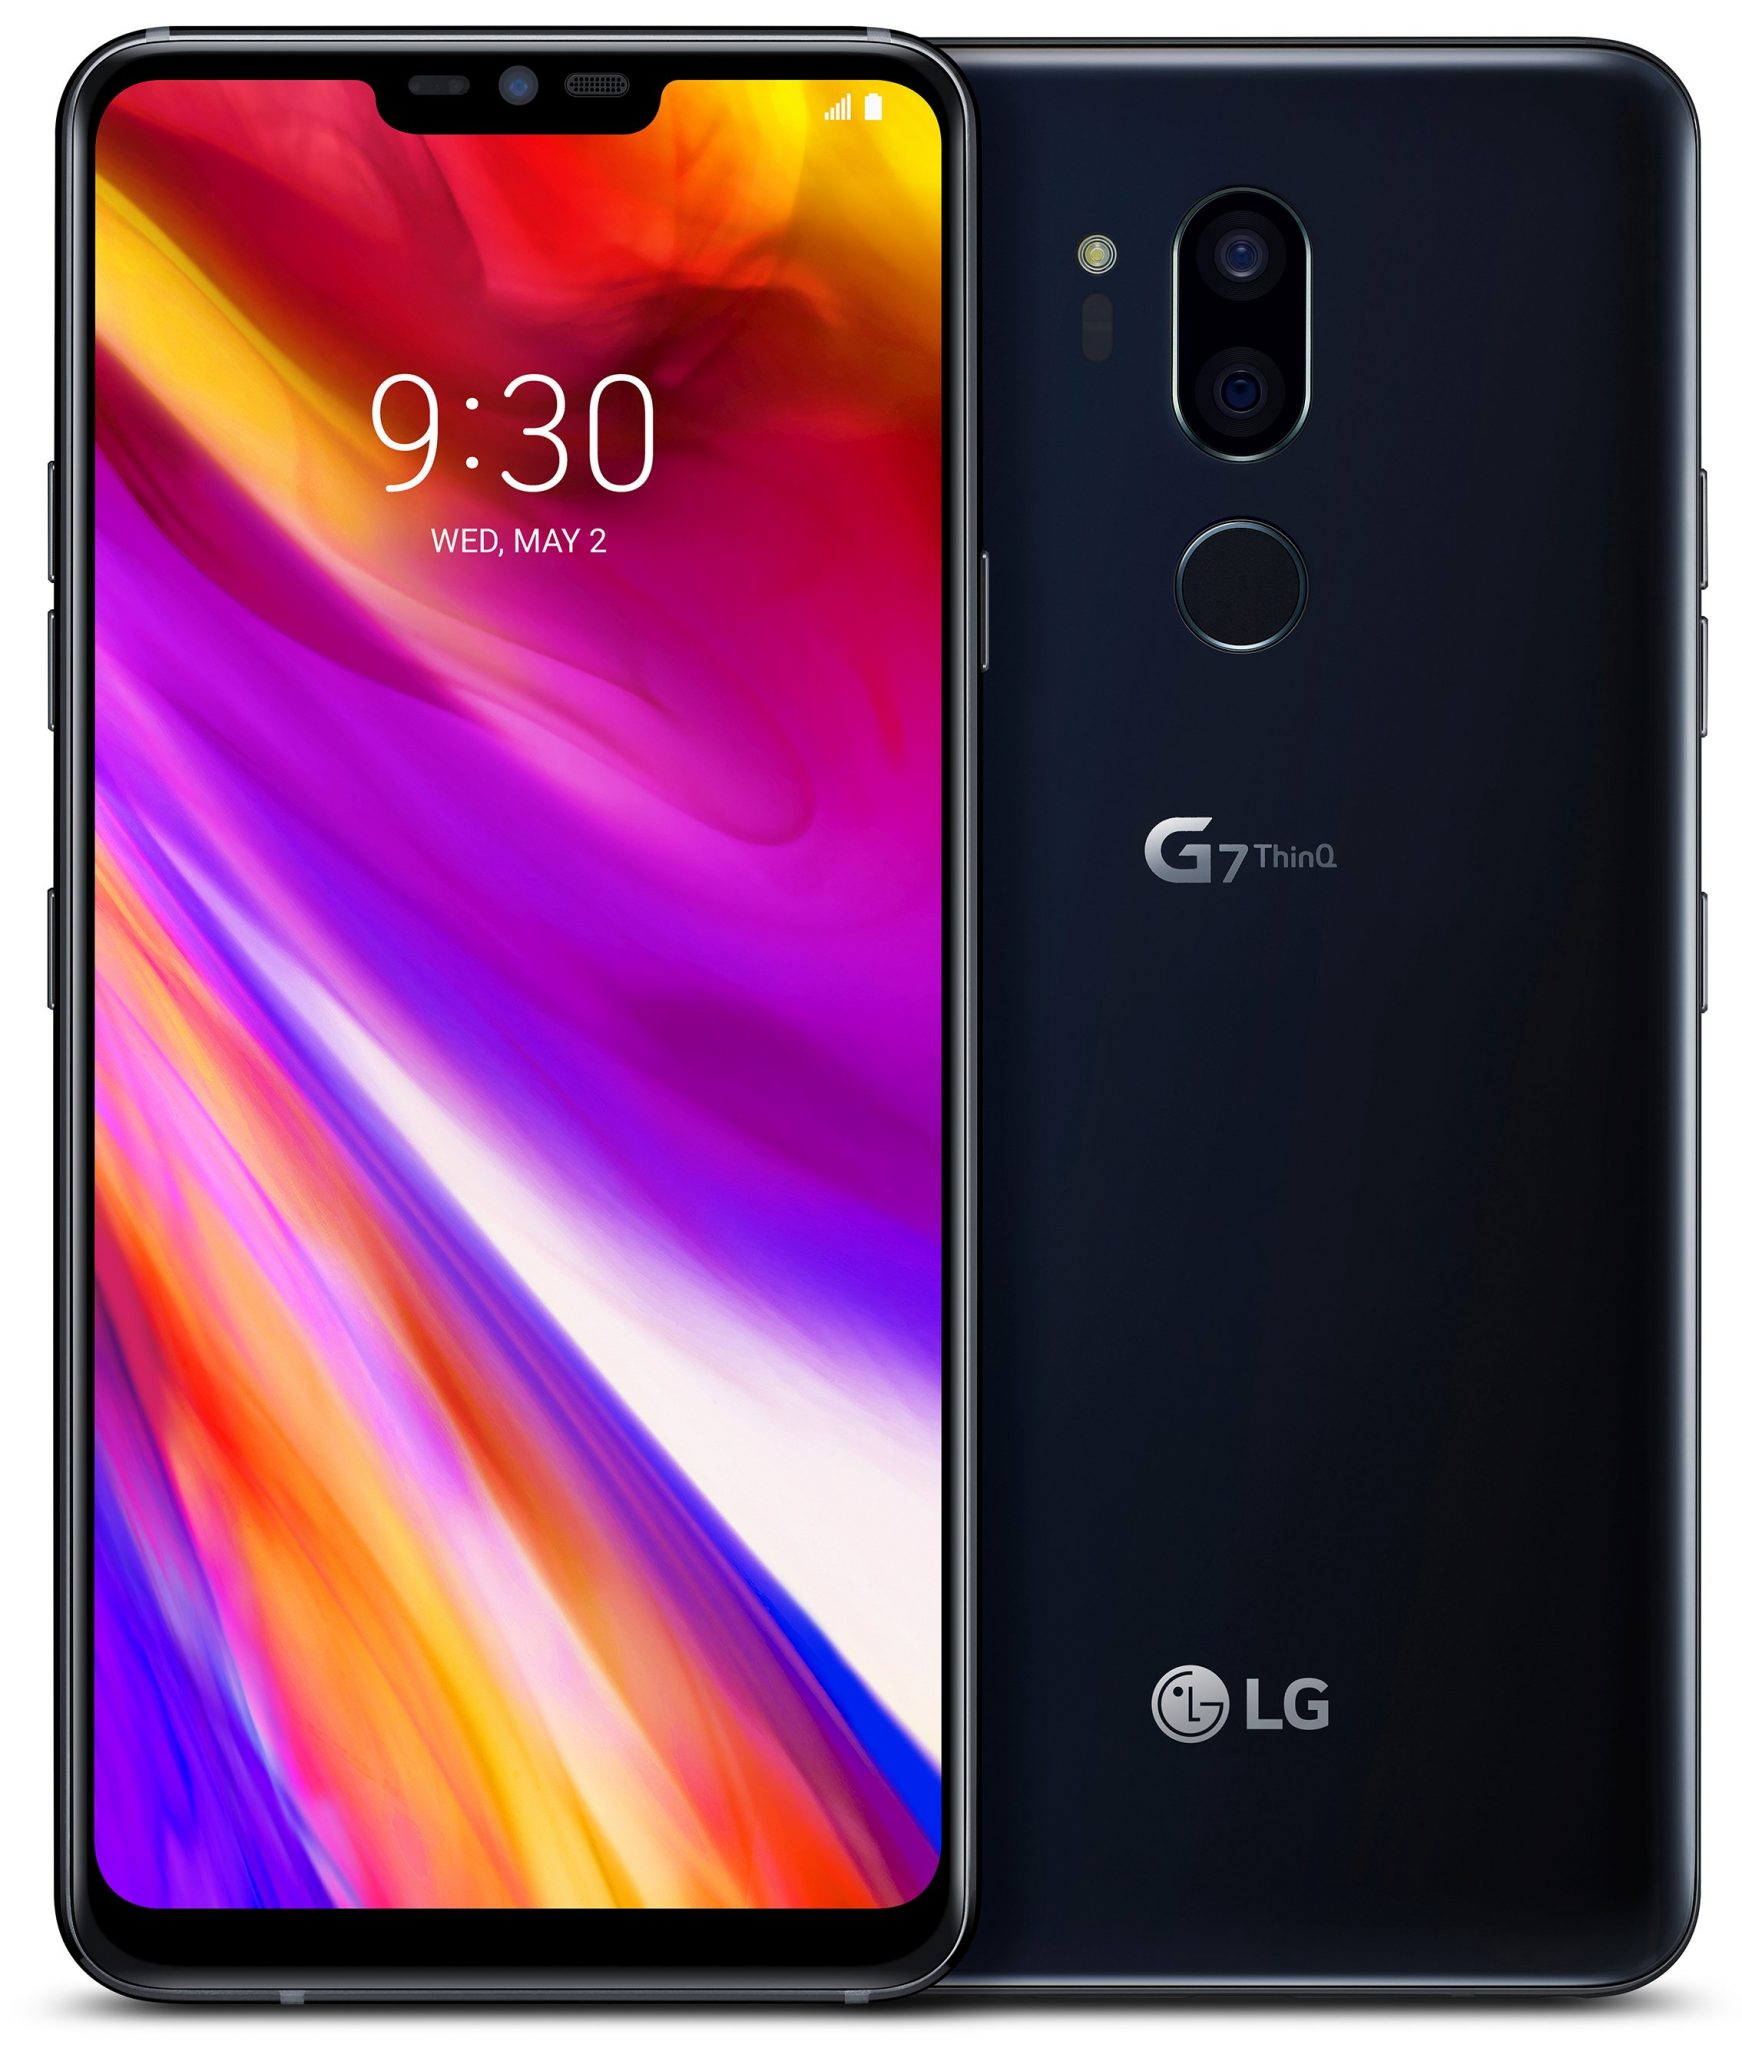 LG G7 ThinQ - Official Renders, Specifications & Pricing 1